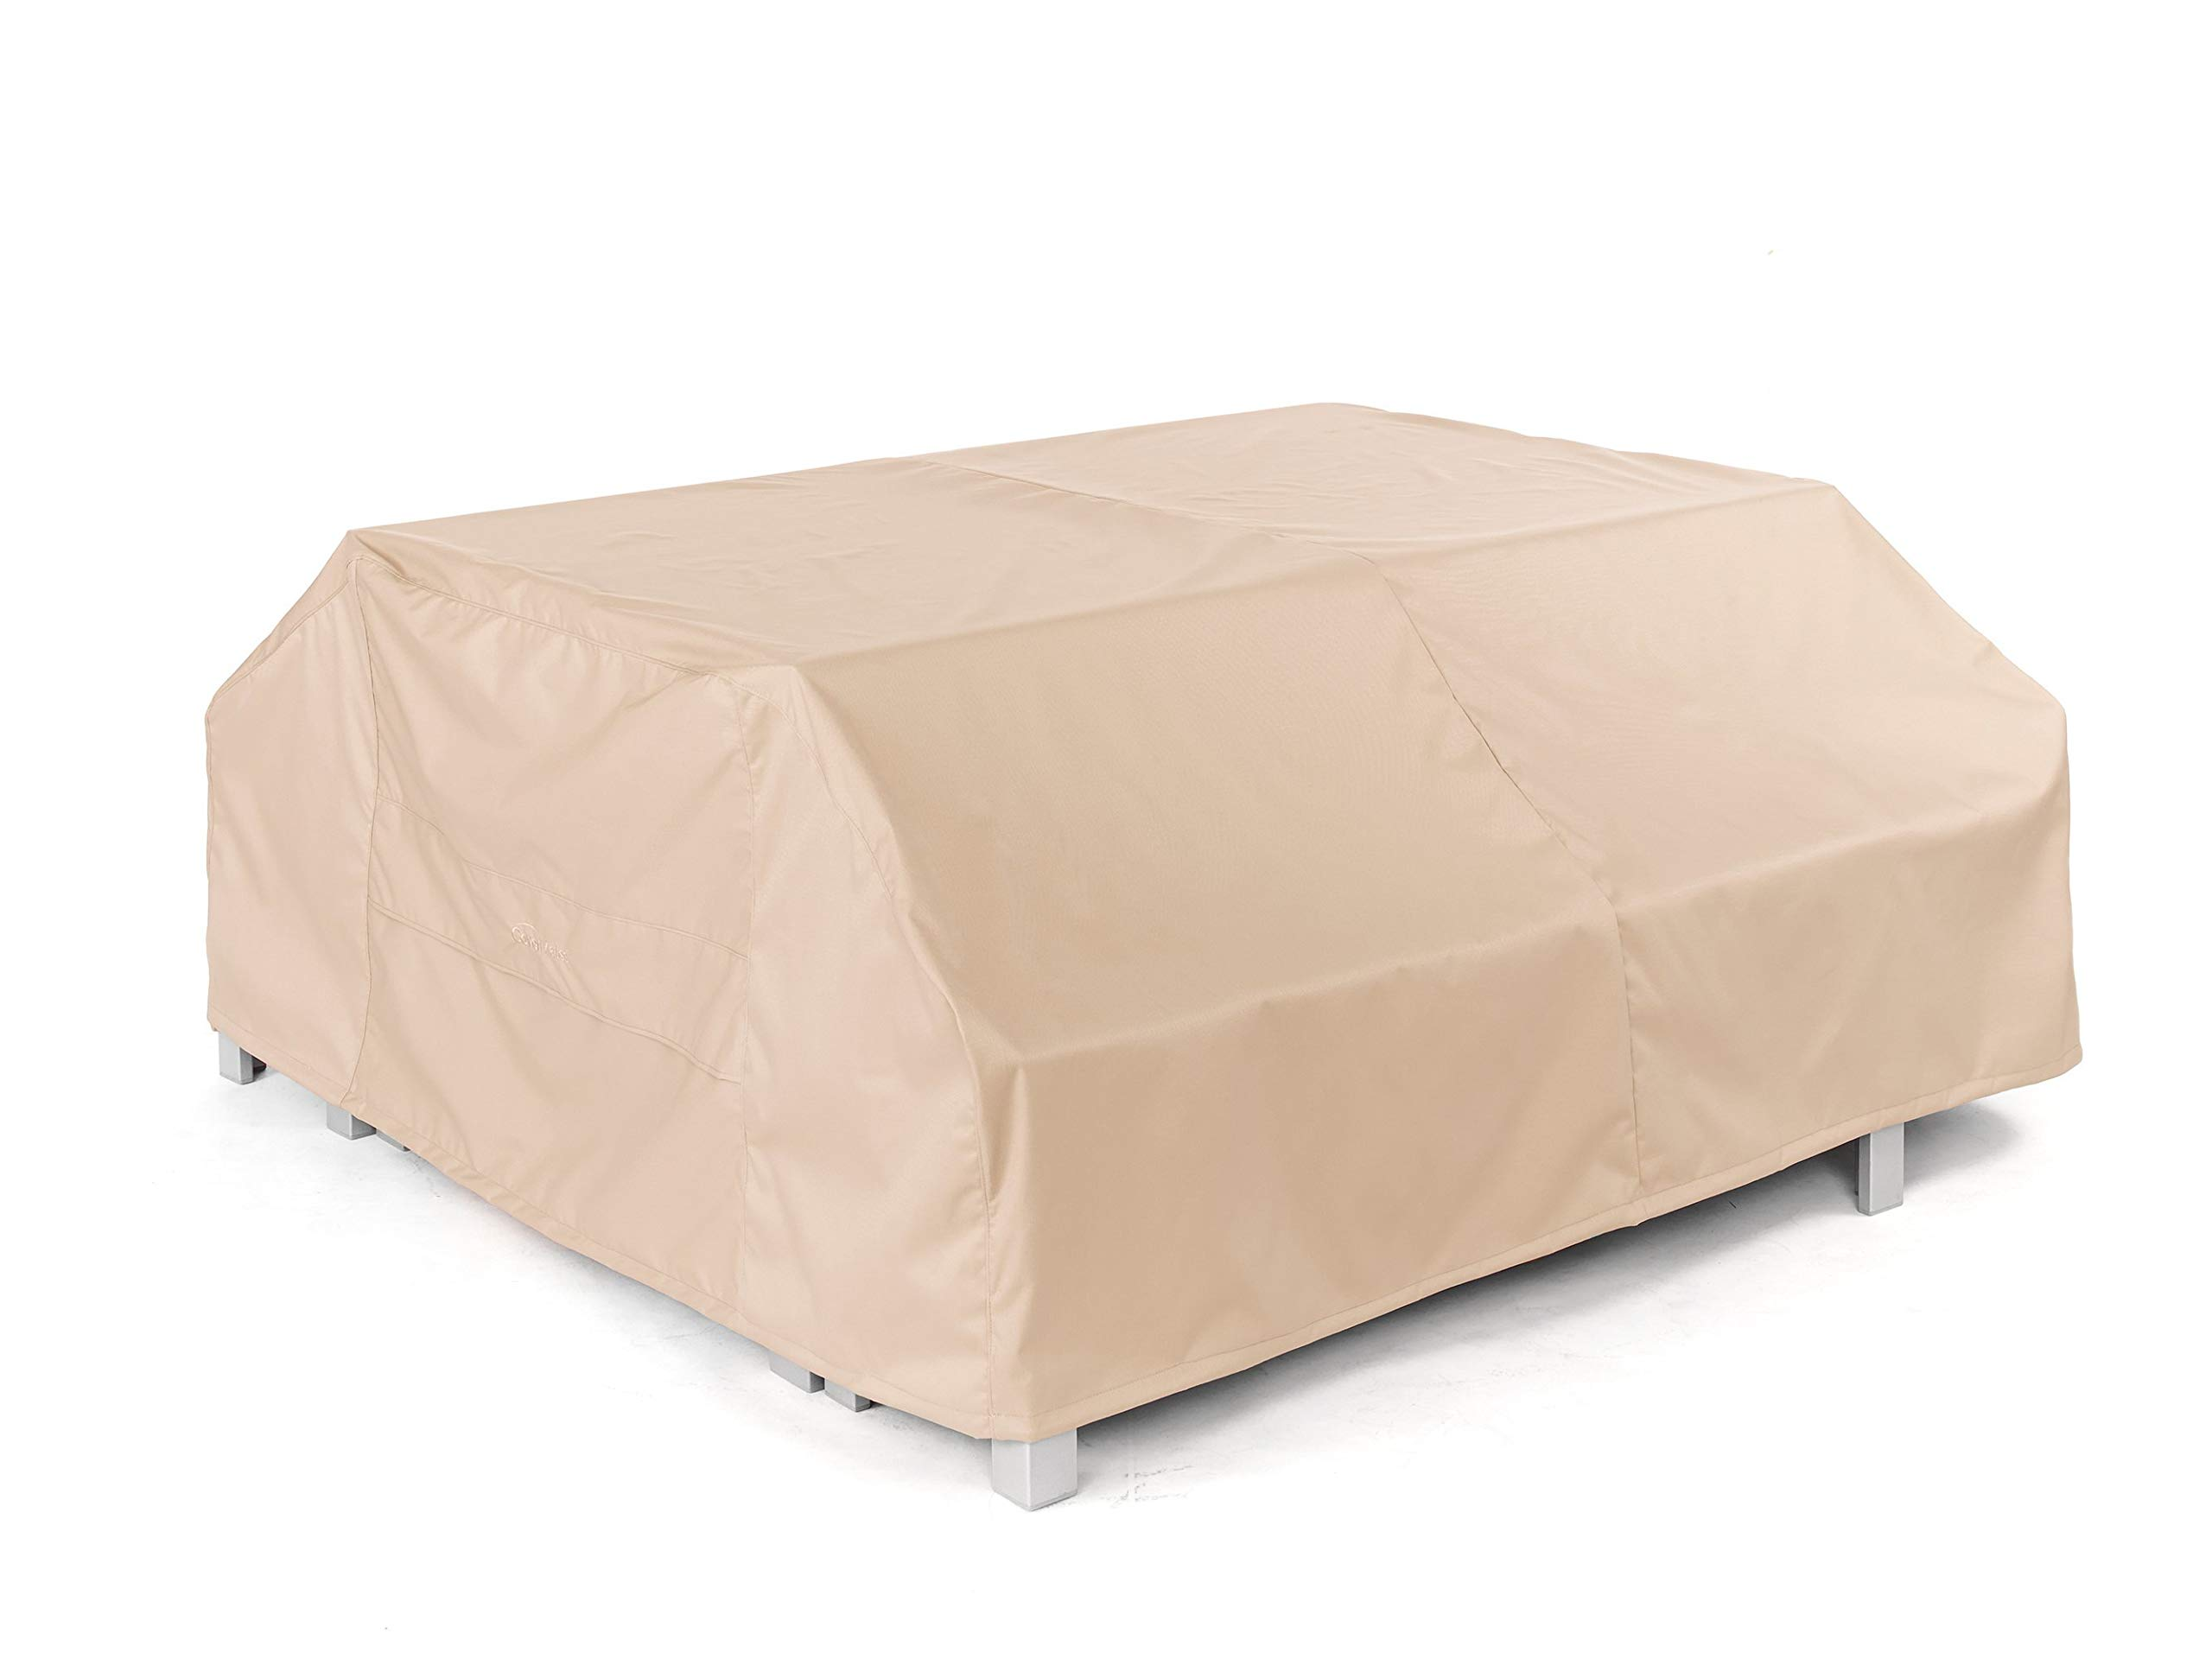 CoverMates - Picnic Table Cover - Fits 76 Inch Width, 62 Inch Depth and 32 Inch Height - Ultima Ripstop - 600D Fade Resistant Poly - Breathable Covered Ventilation - 7 Year Warranty - Ripstop Tan